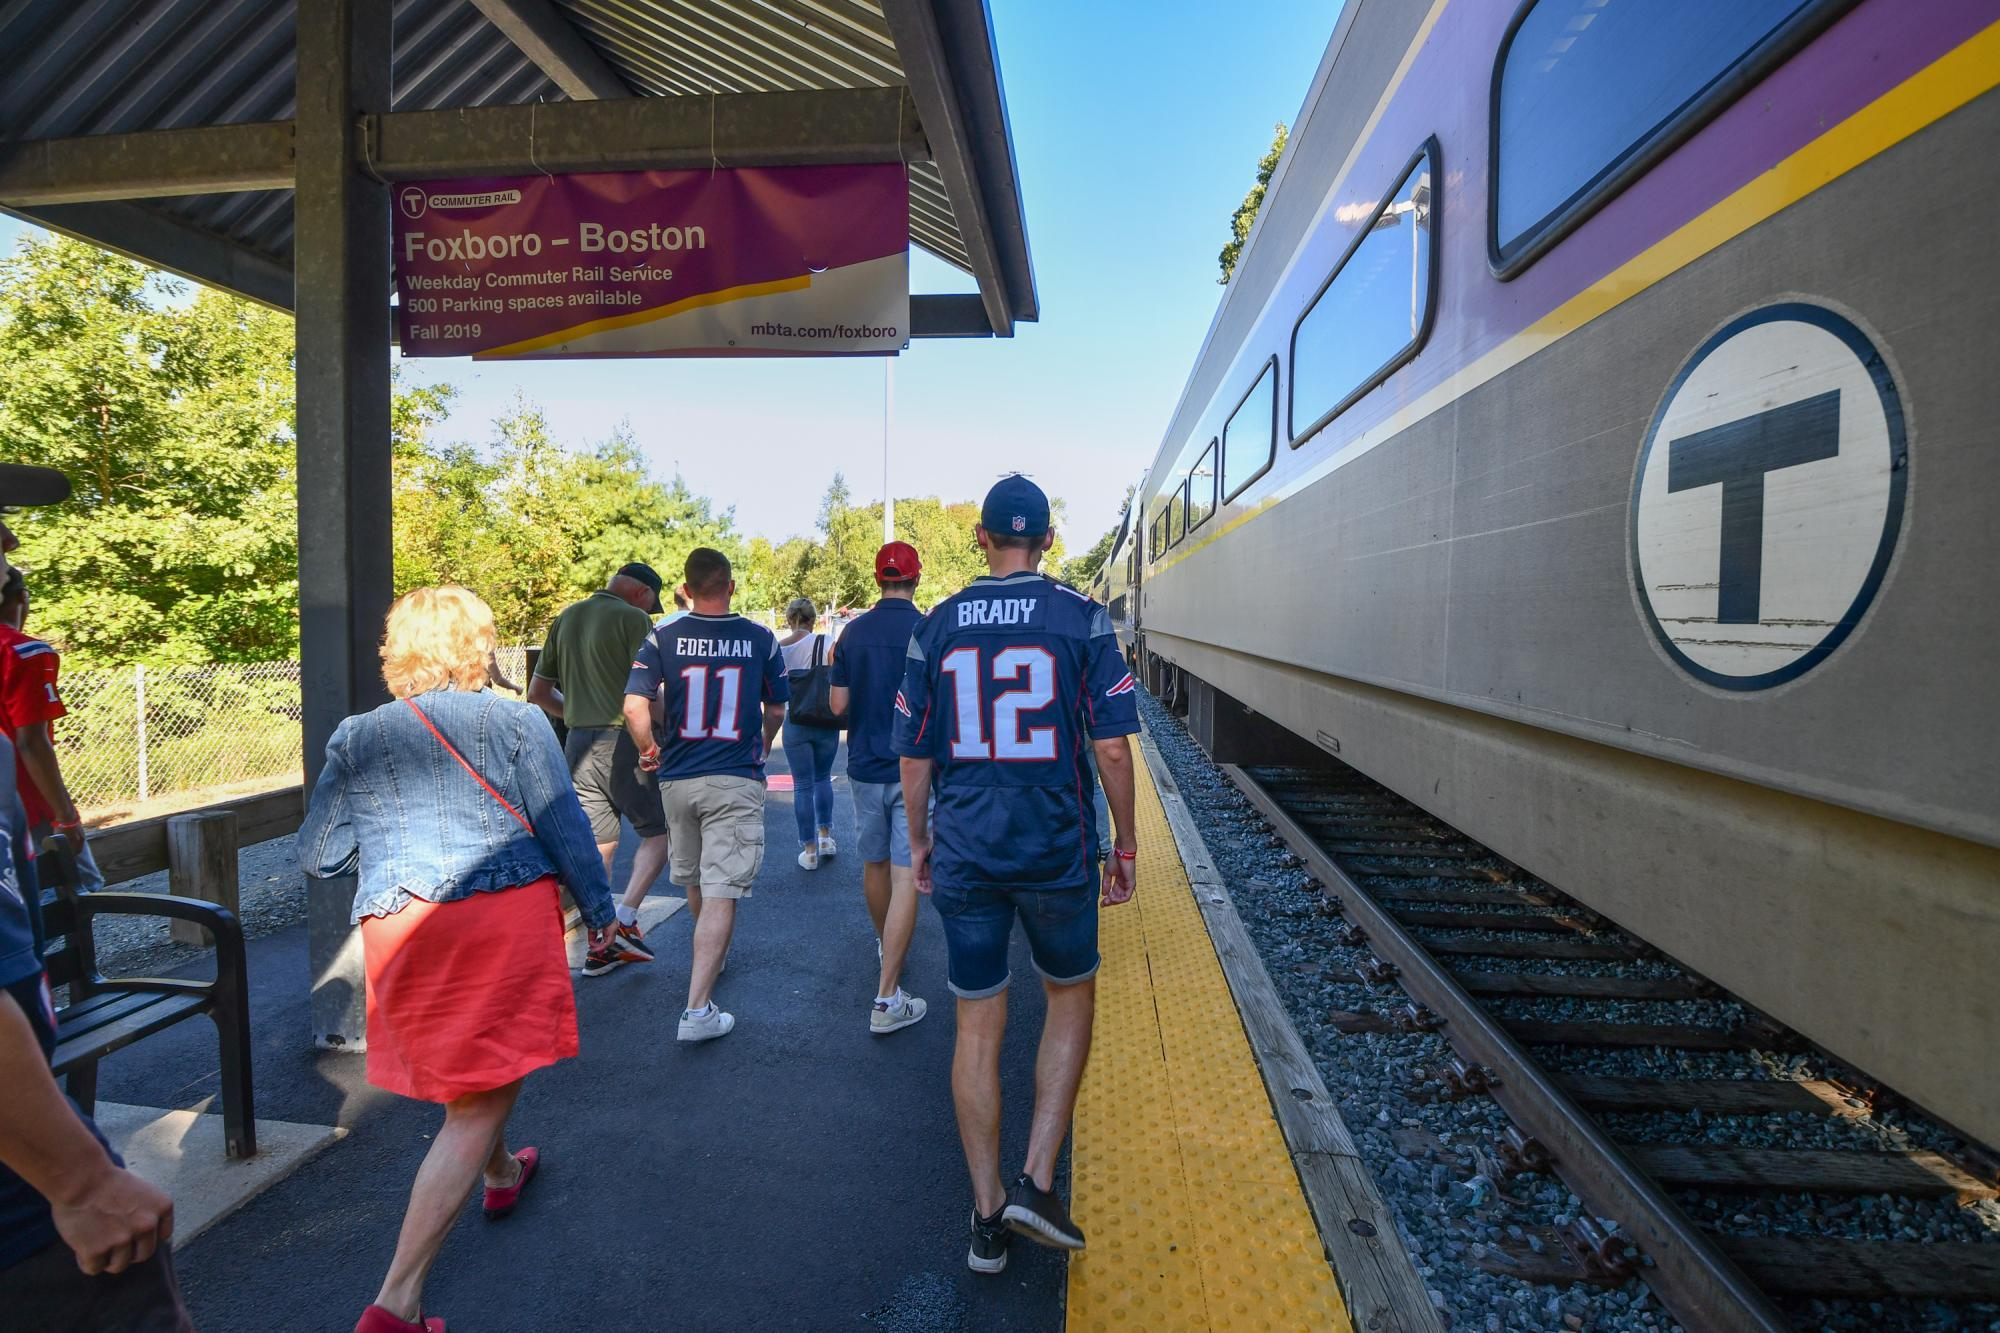 At Foxboro Station, riders with Patriots jerseys walk on the platform, passing by the Commuter Rail train.